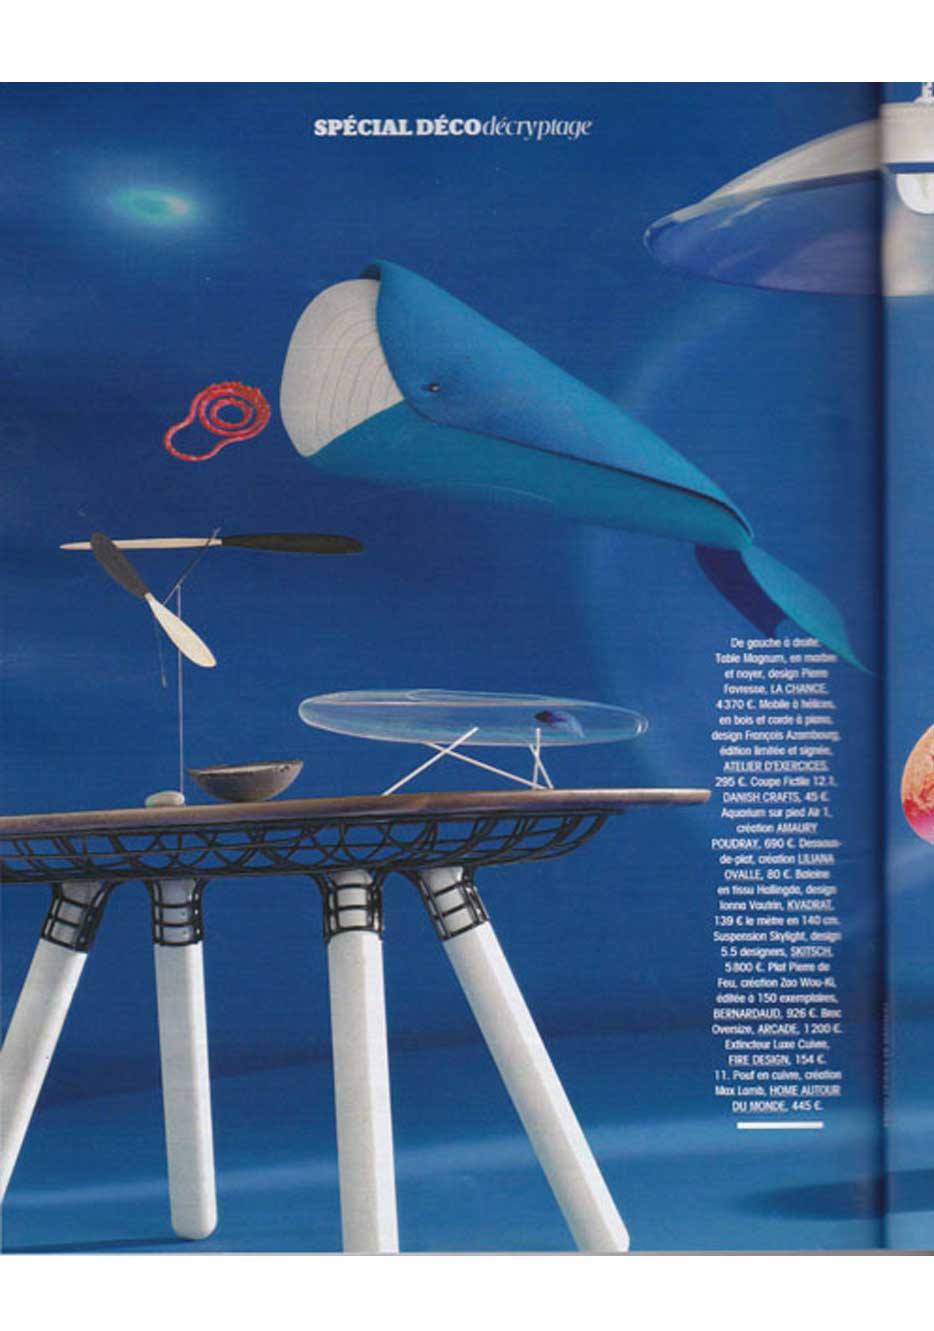 Article about AIR Aquarium by Amaury Poudray